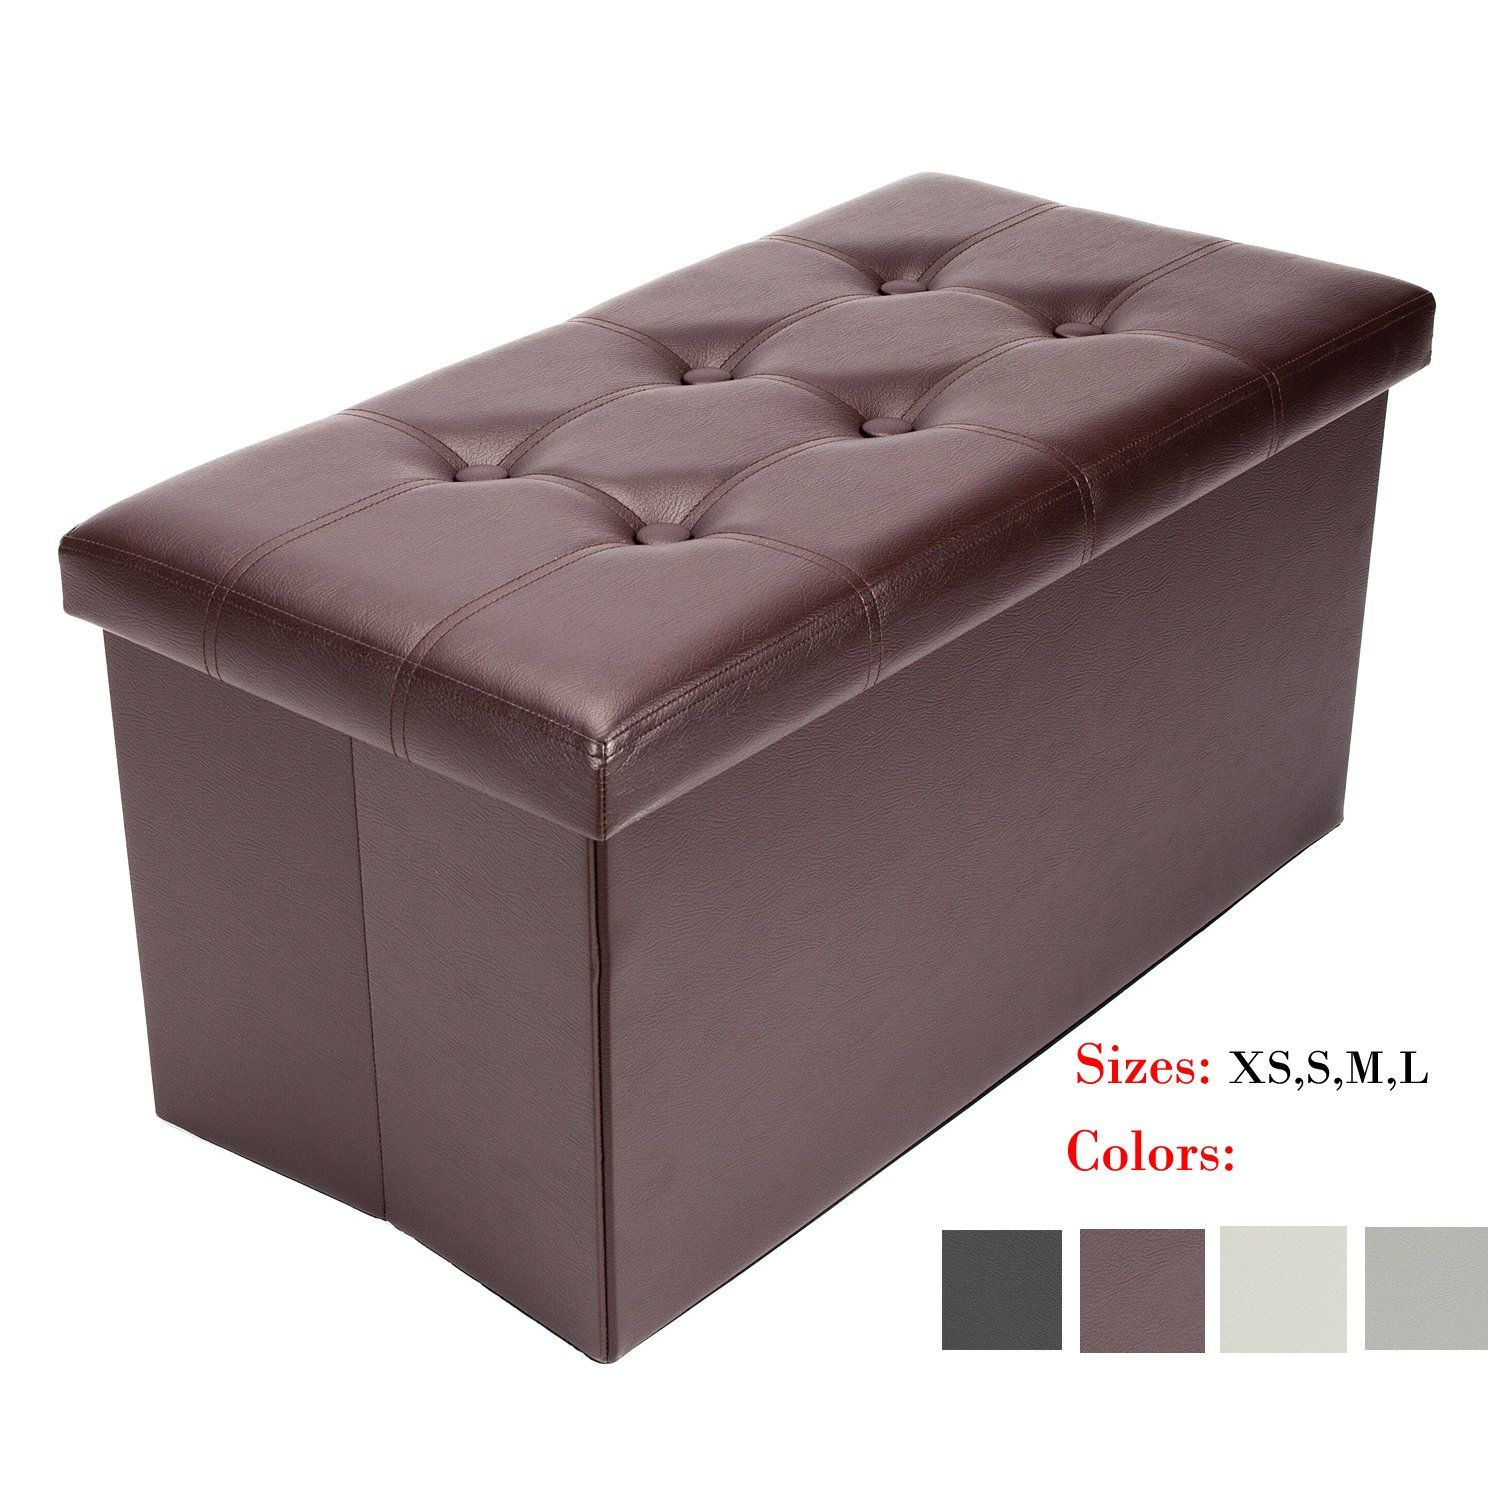 Stow Persimmon 17 5 Leather Storage Ottoman In Ottomans Cubes Crate And Barrel Storage Ottoman Leather Storage Ottoman Storage